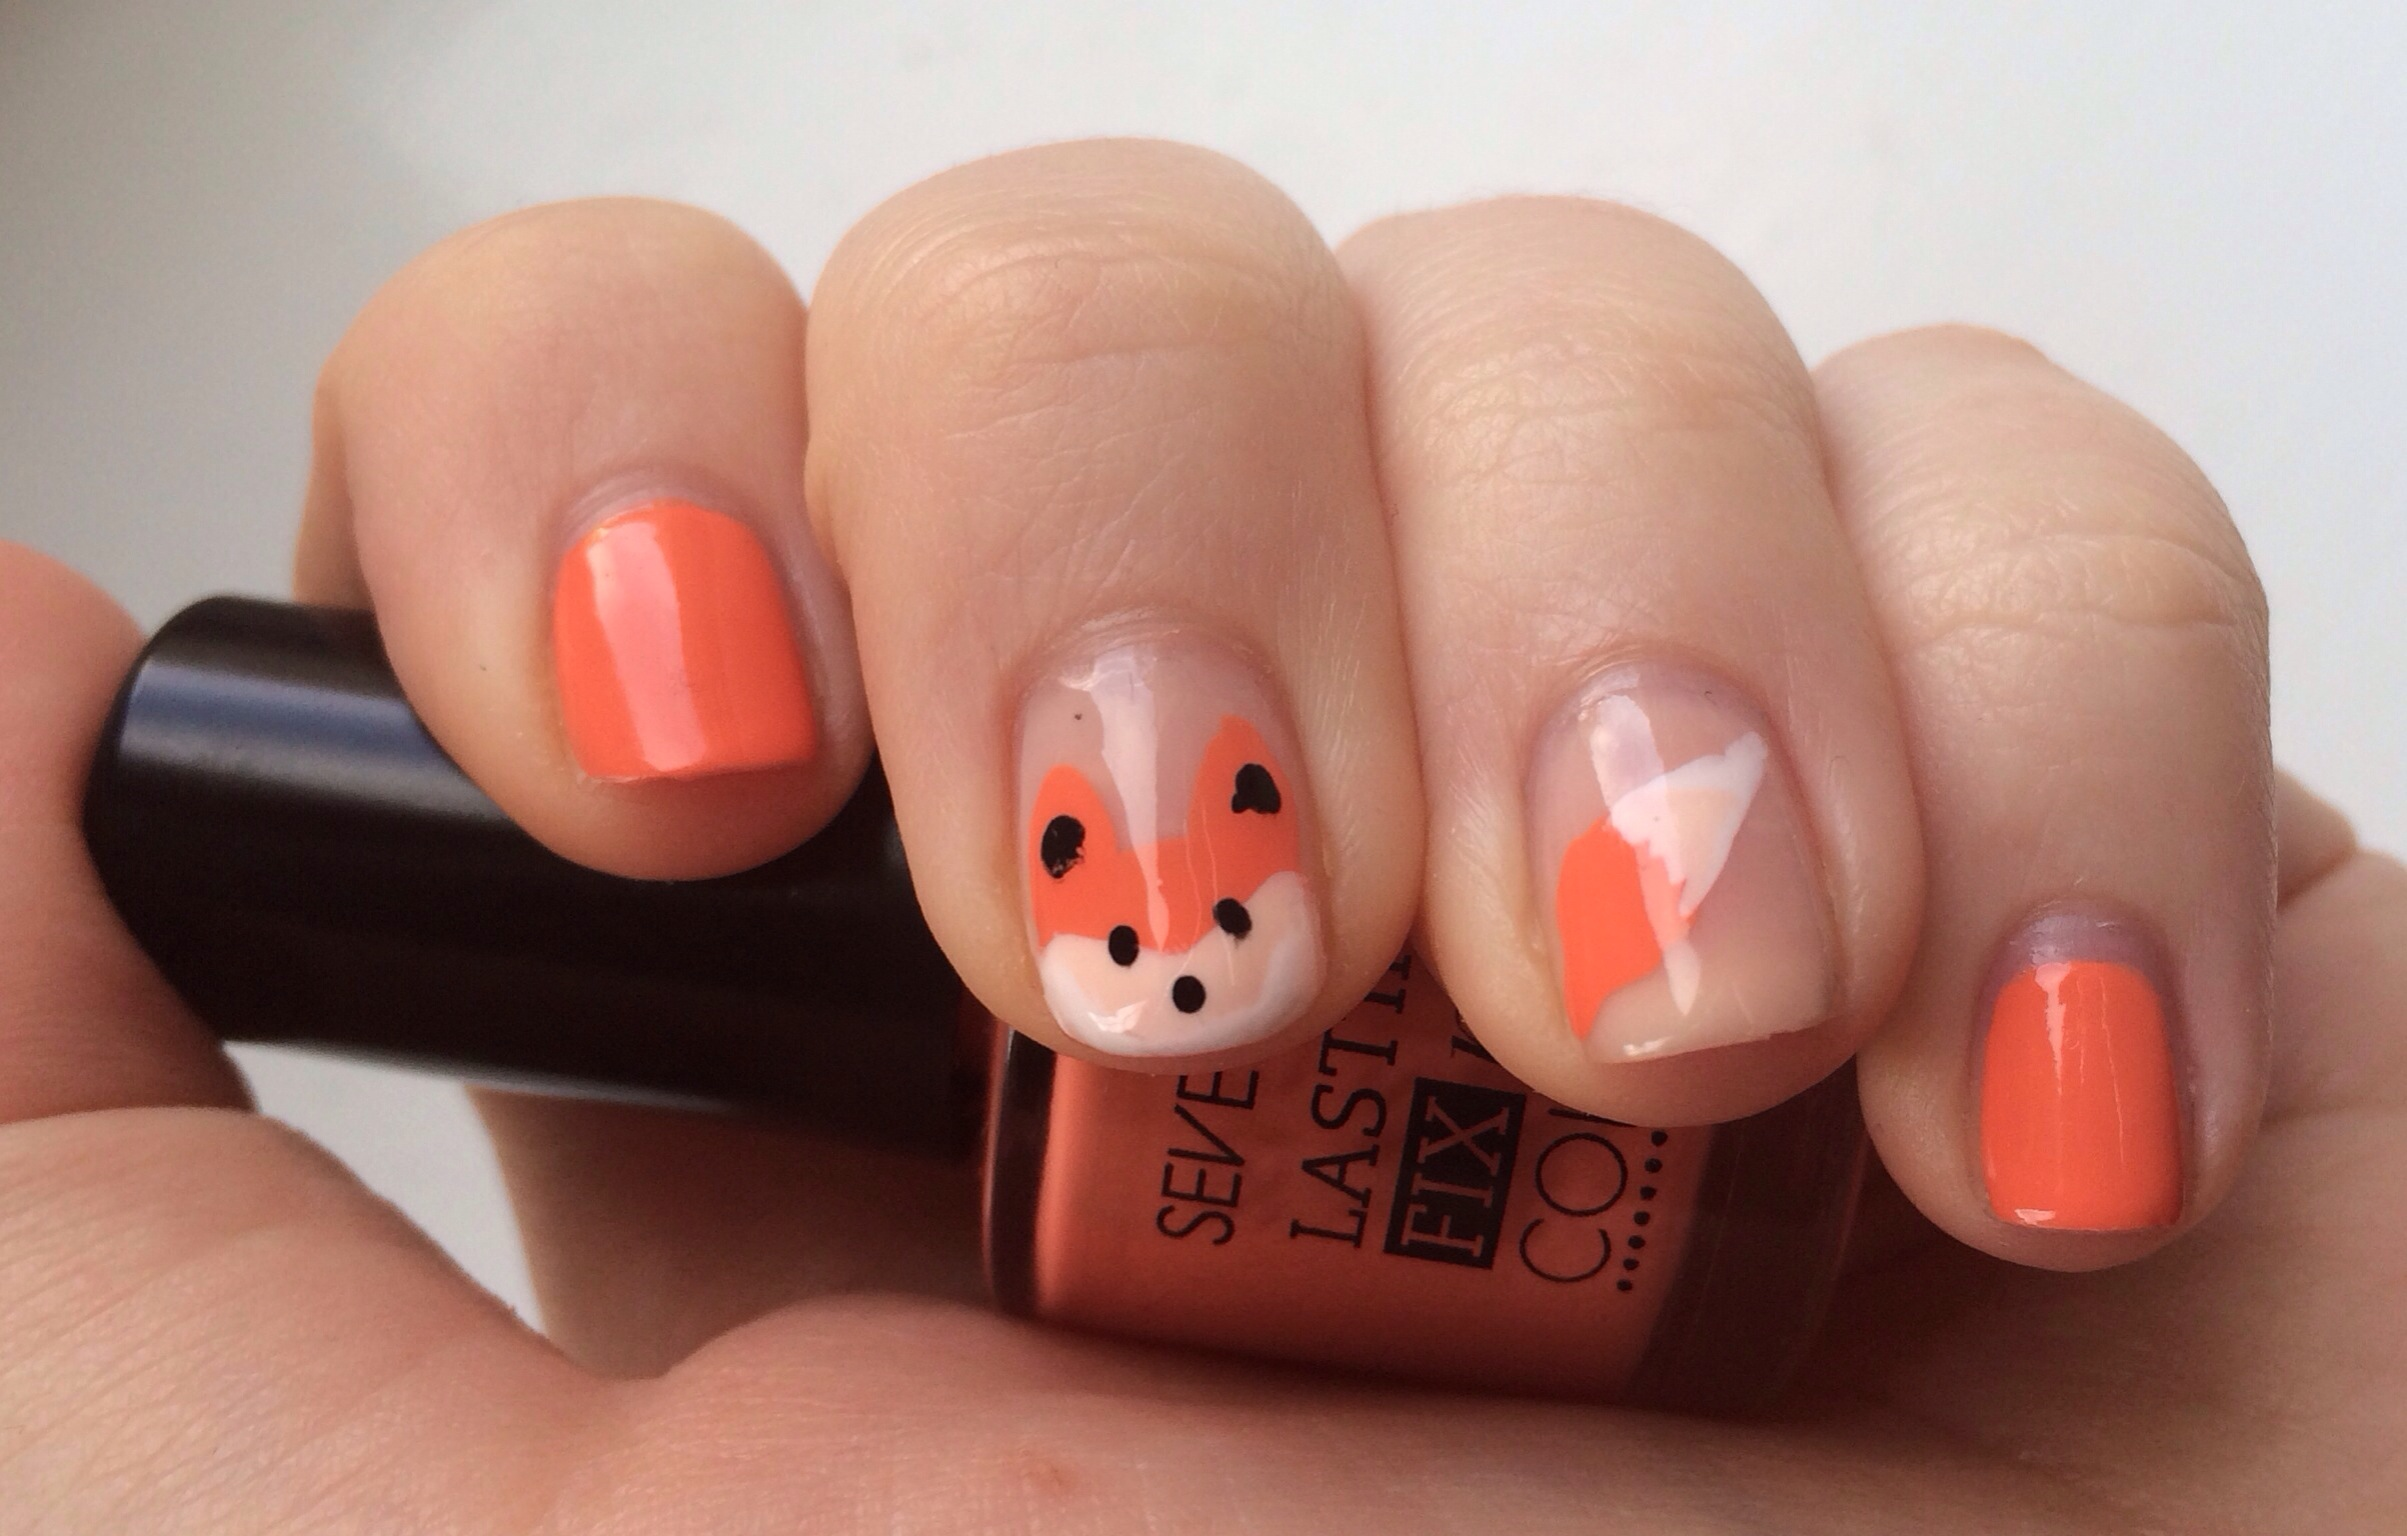 Nail Art: What Does The Fox Say? |